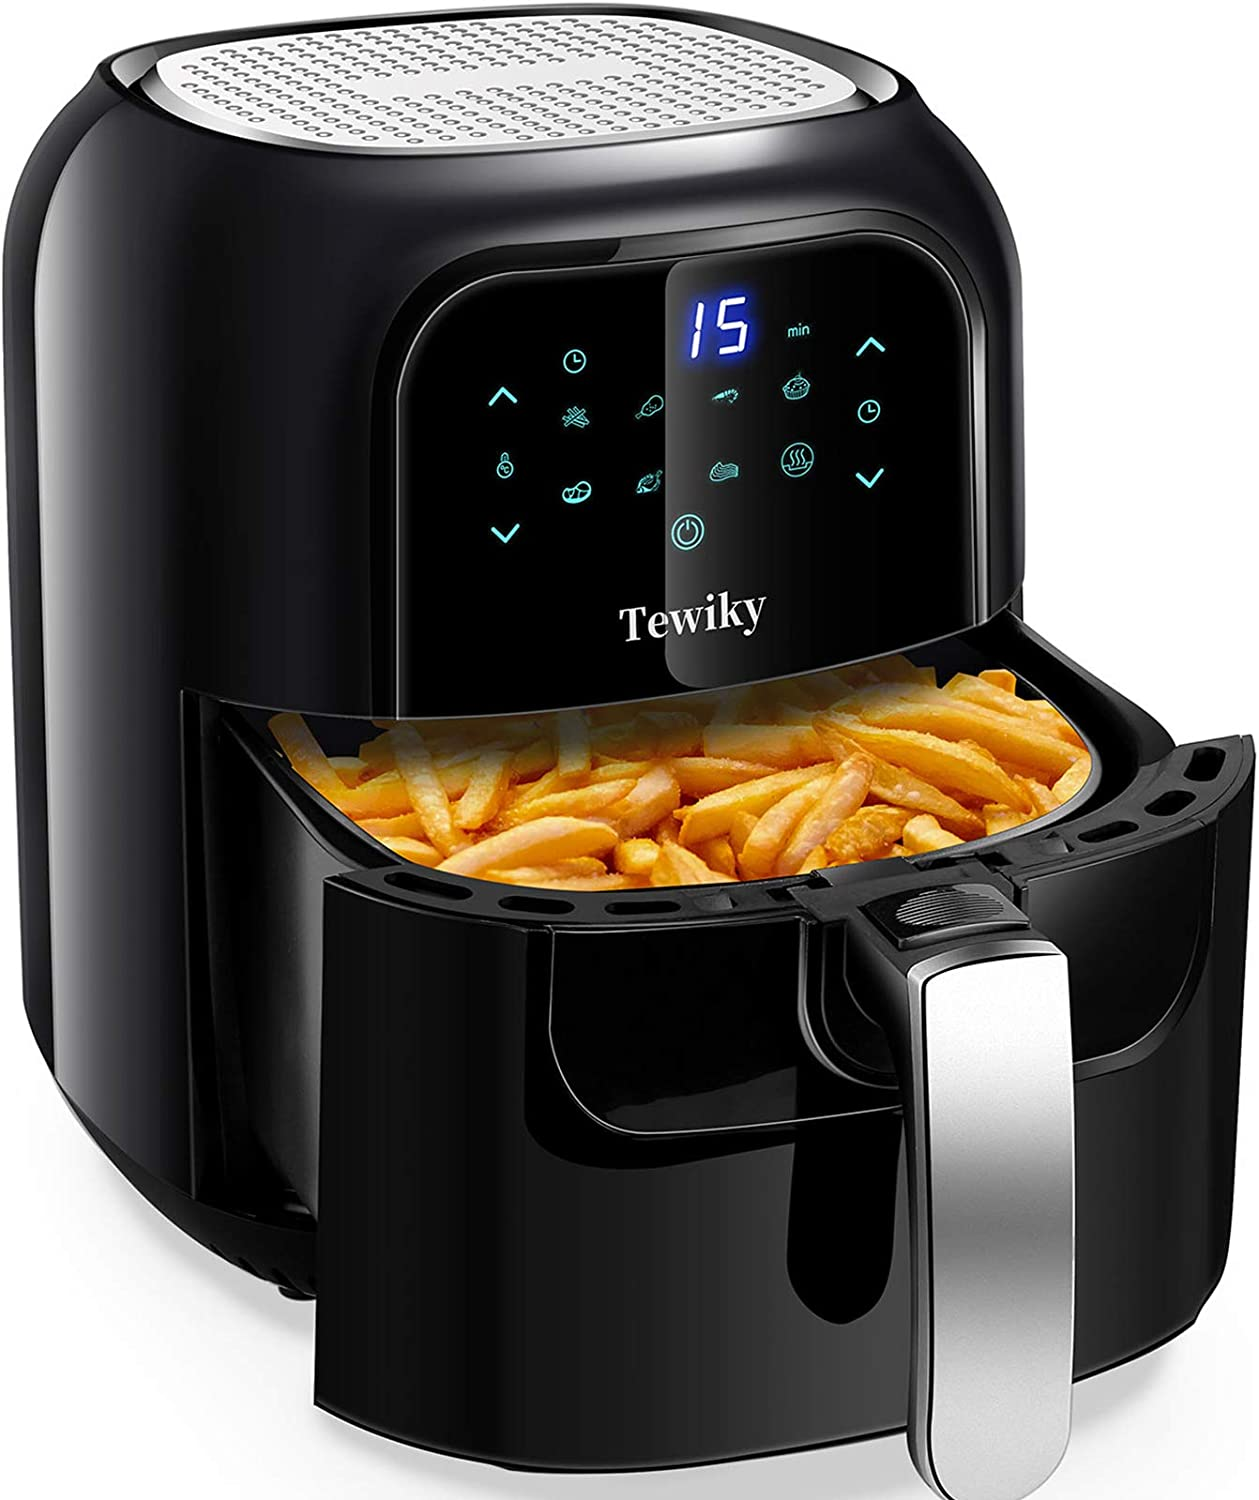 Air Fryer, Tewiky Air Cookers 5.8 Quart,1400 Watt 60 Minutes Digital Air Fryers Oven & Oilless Cooker for Air Frying,Roast. Bake ,LED Digital Touchscreen with 7 Presets,Nonstick Basket